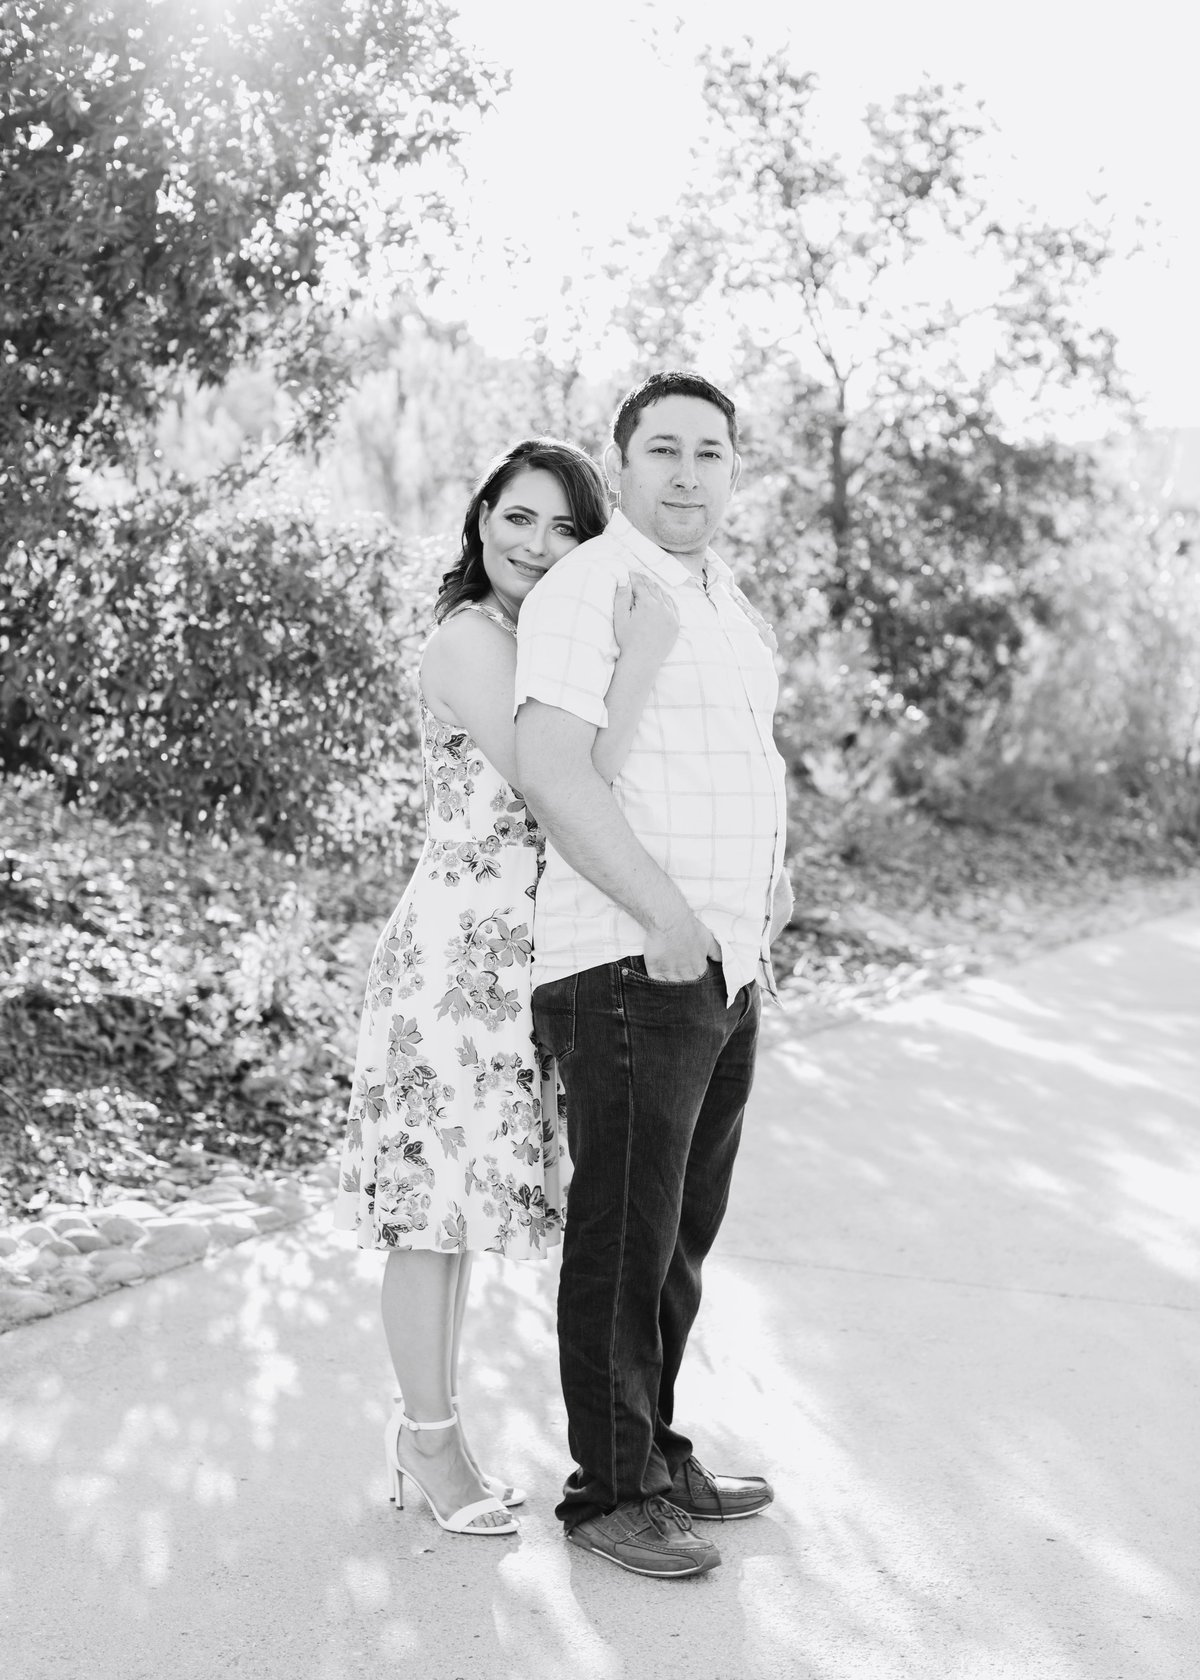 Katherine_beth_photography_San_diego_wedding_photographer_san_diego_wedding_san_diego_engagement_mission_trails_regional_park_engagement_001-min